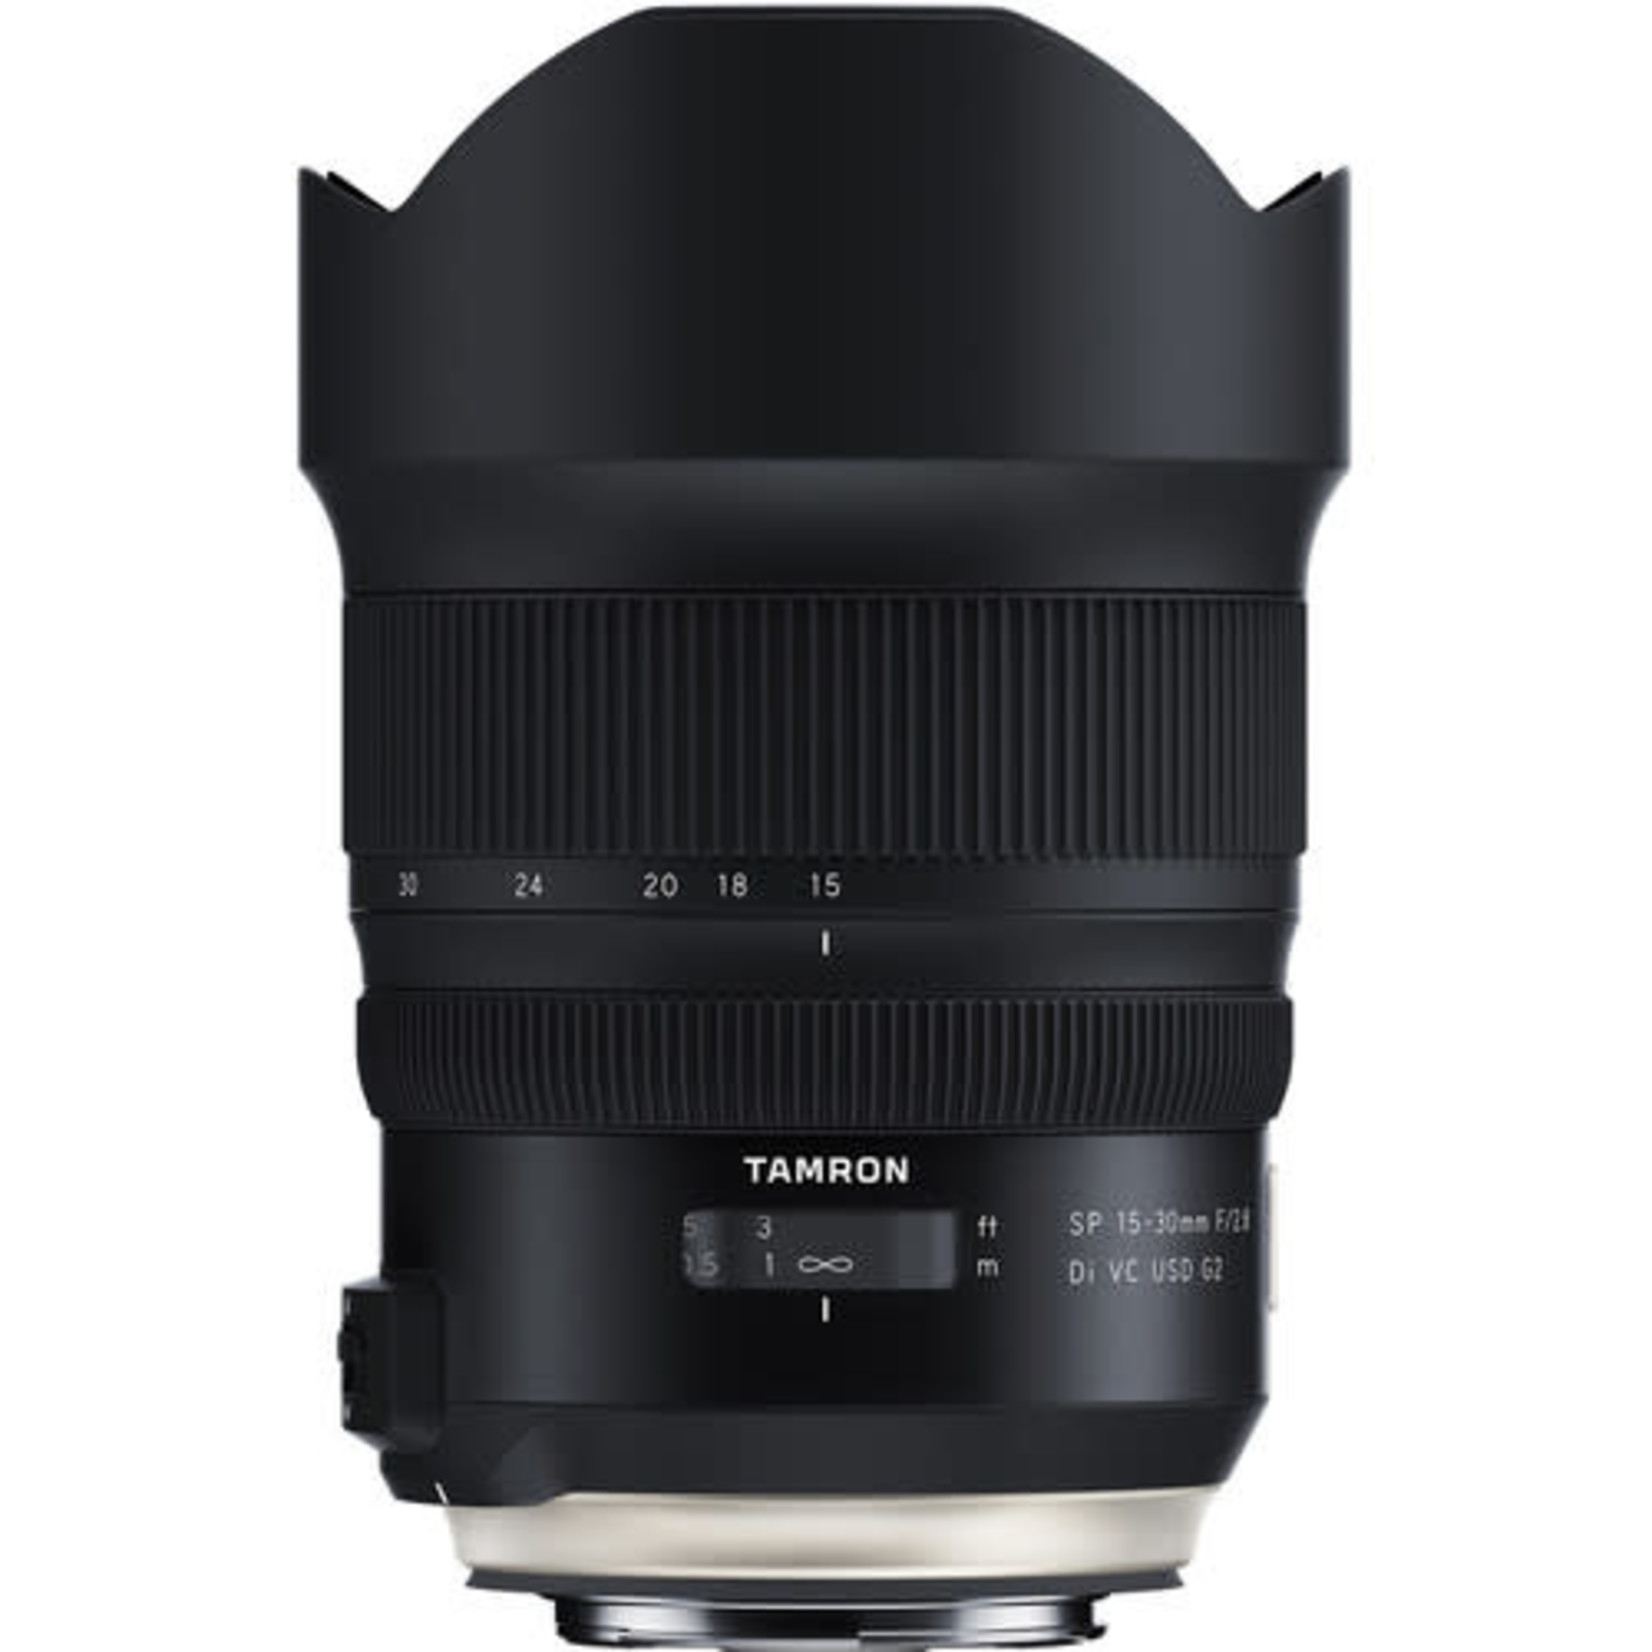 Tamron Tamron SP 15-30mm f/2.8 Di VC USD G2 Lens for Canon EF